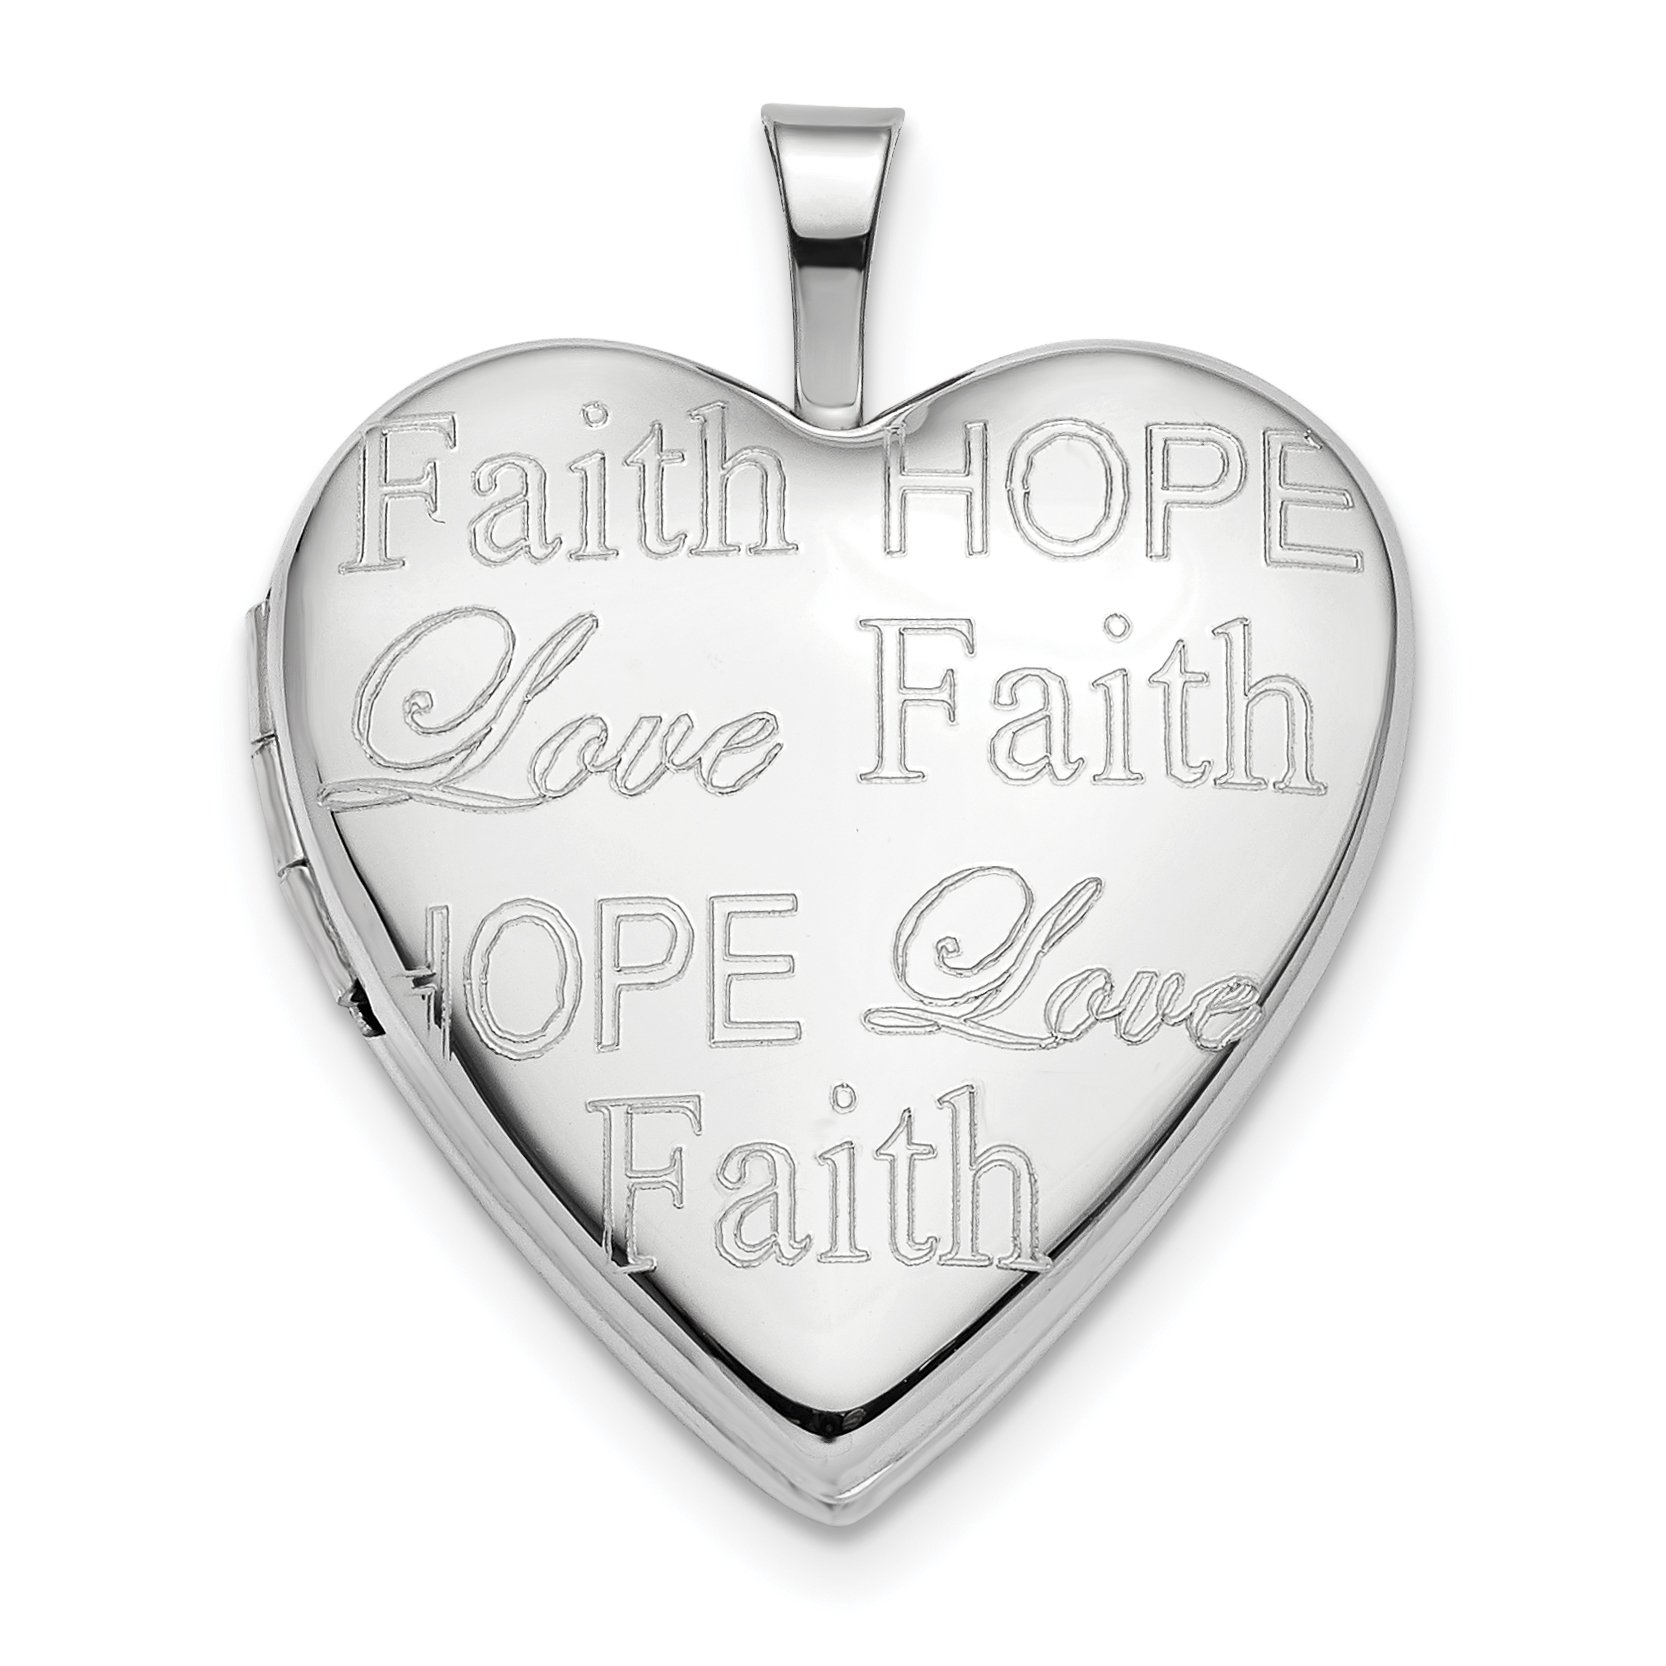 ICE CARATS 14k White Gold 20mm Love Faith Hope Heart Photo Pendant Charm Locket Chain Necklace That Holds Pictures Inspiration Fine Jewelry Gift Set For Women Heart